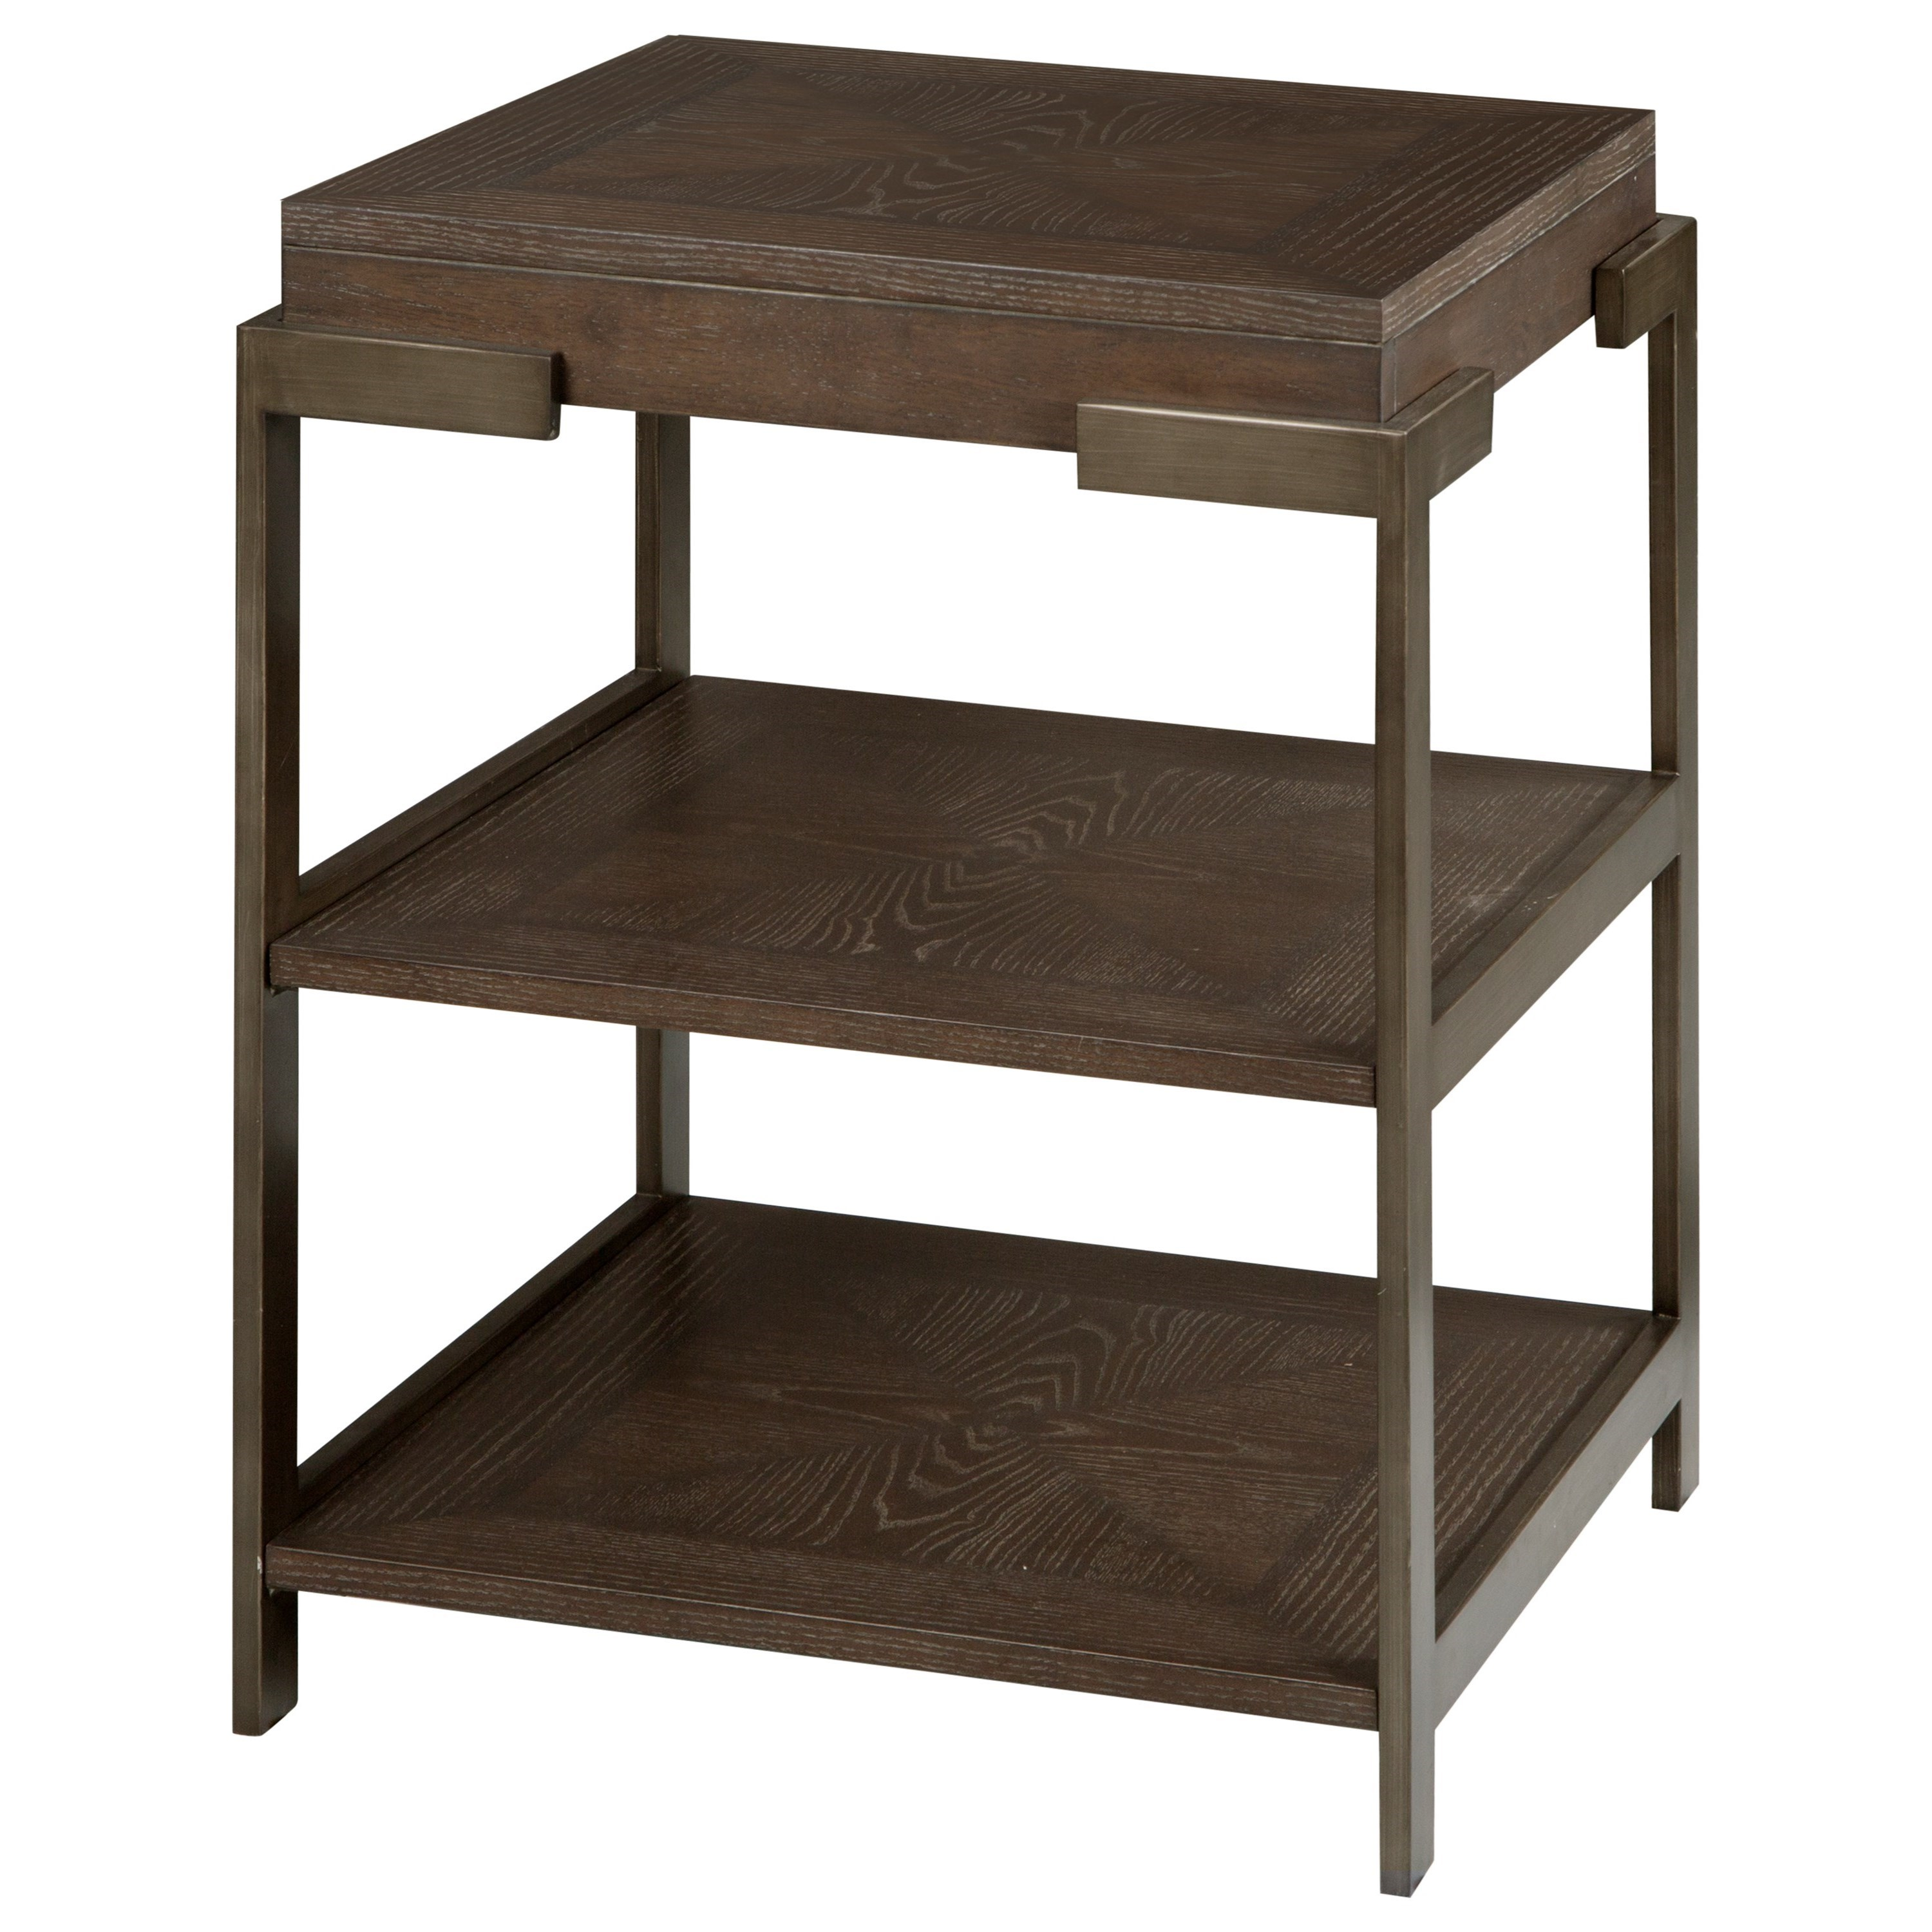 Thorton Square Accent Table by Magnussen Home at Baer's Furniture